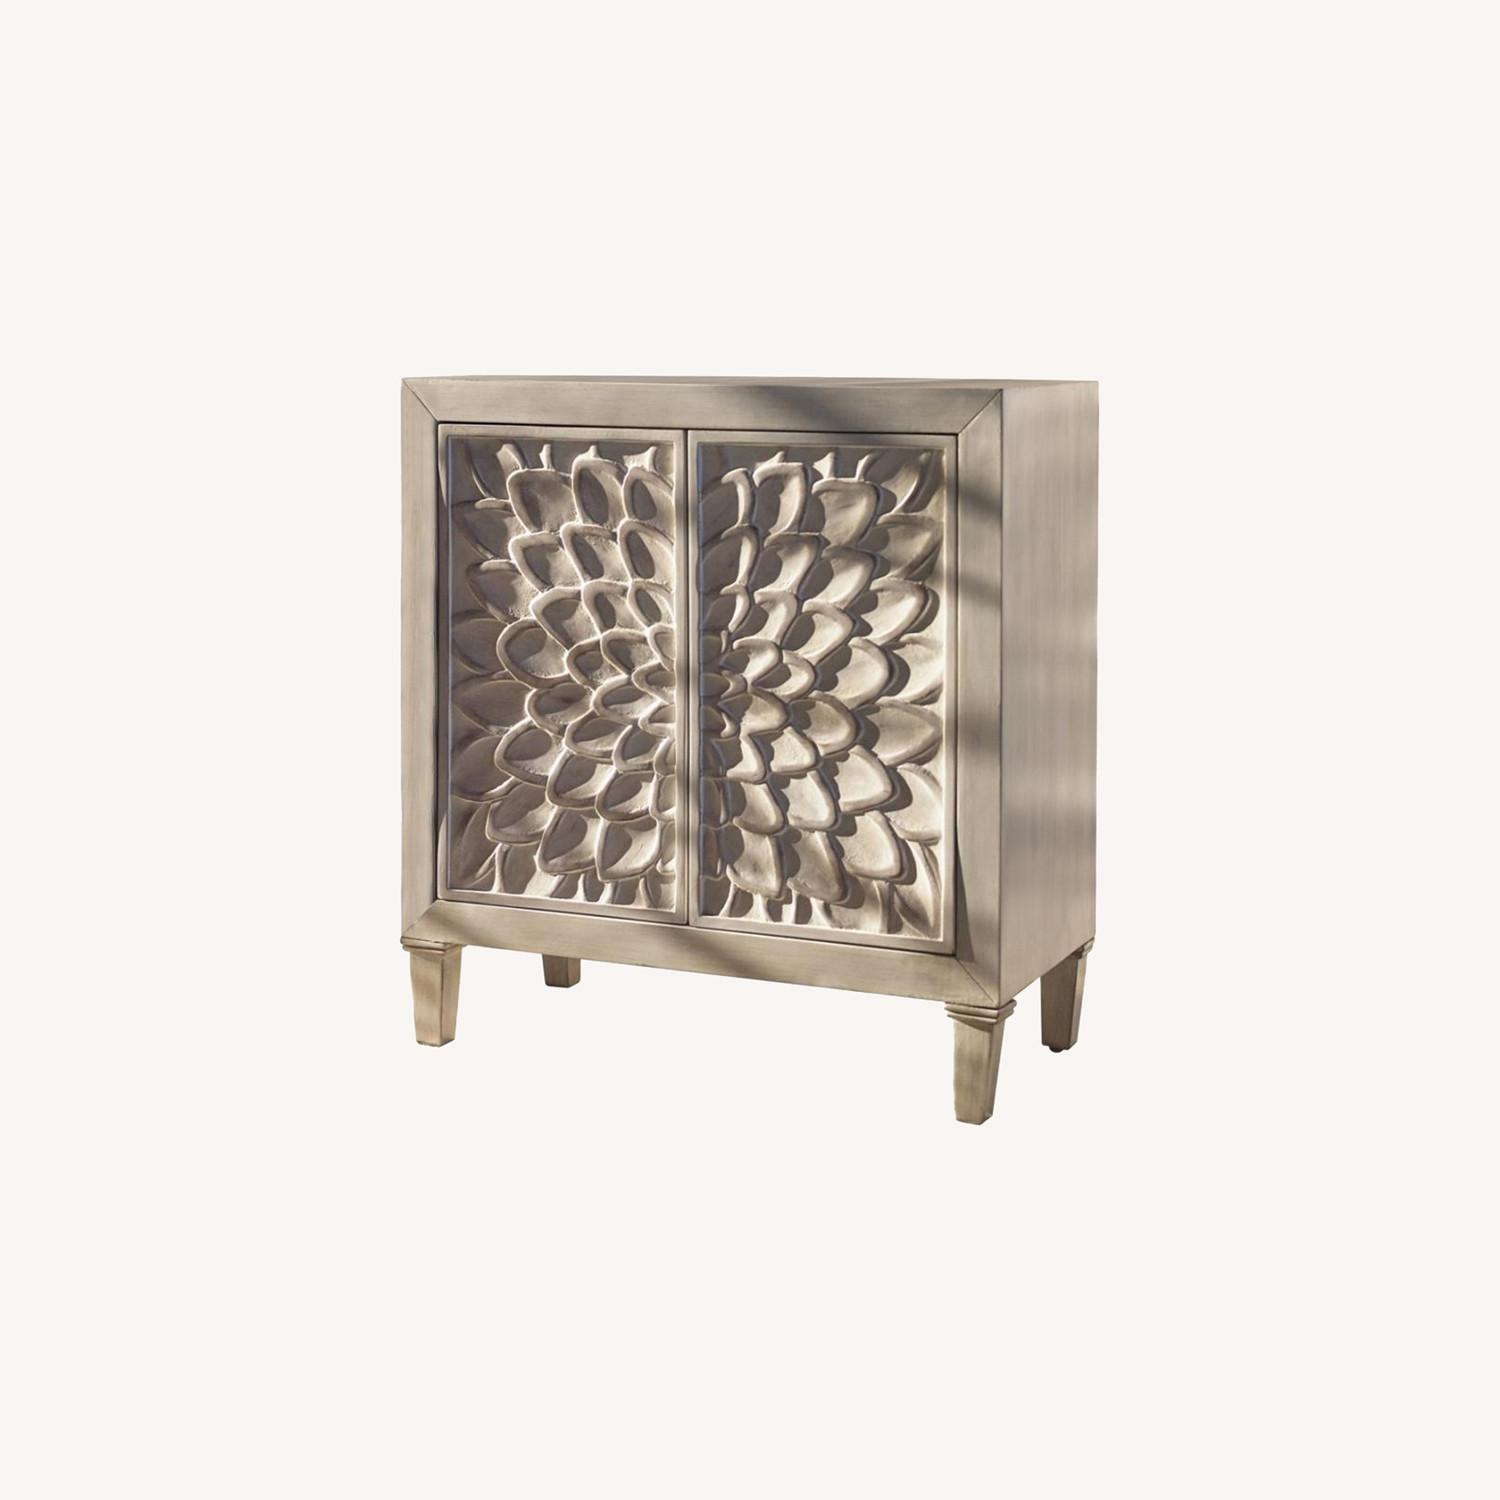 Accent Cabinet In Distressed White Wood Finish - image-3